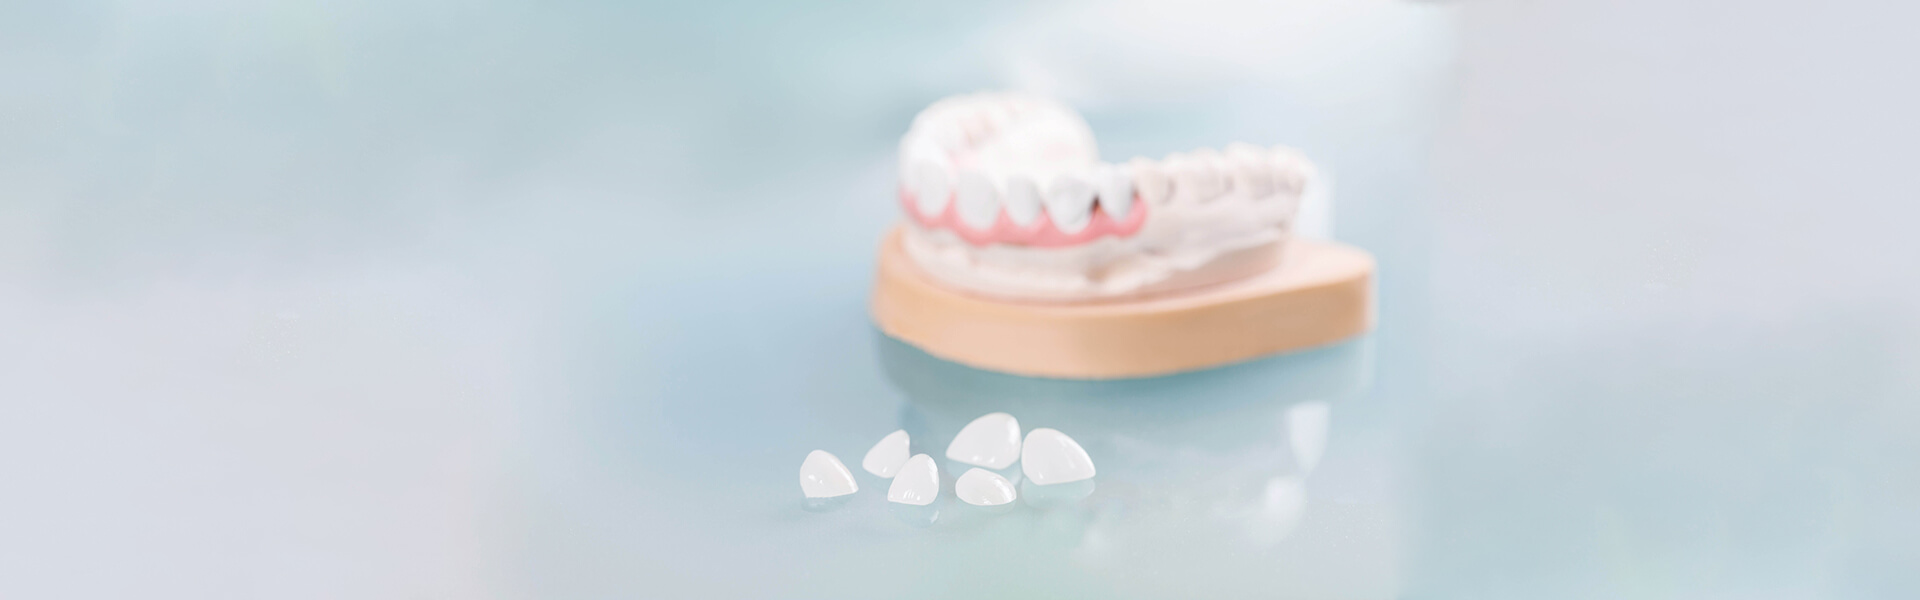 A Guide to Dental Veneers and How to Use Them